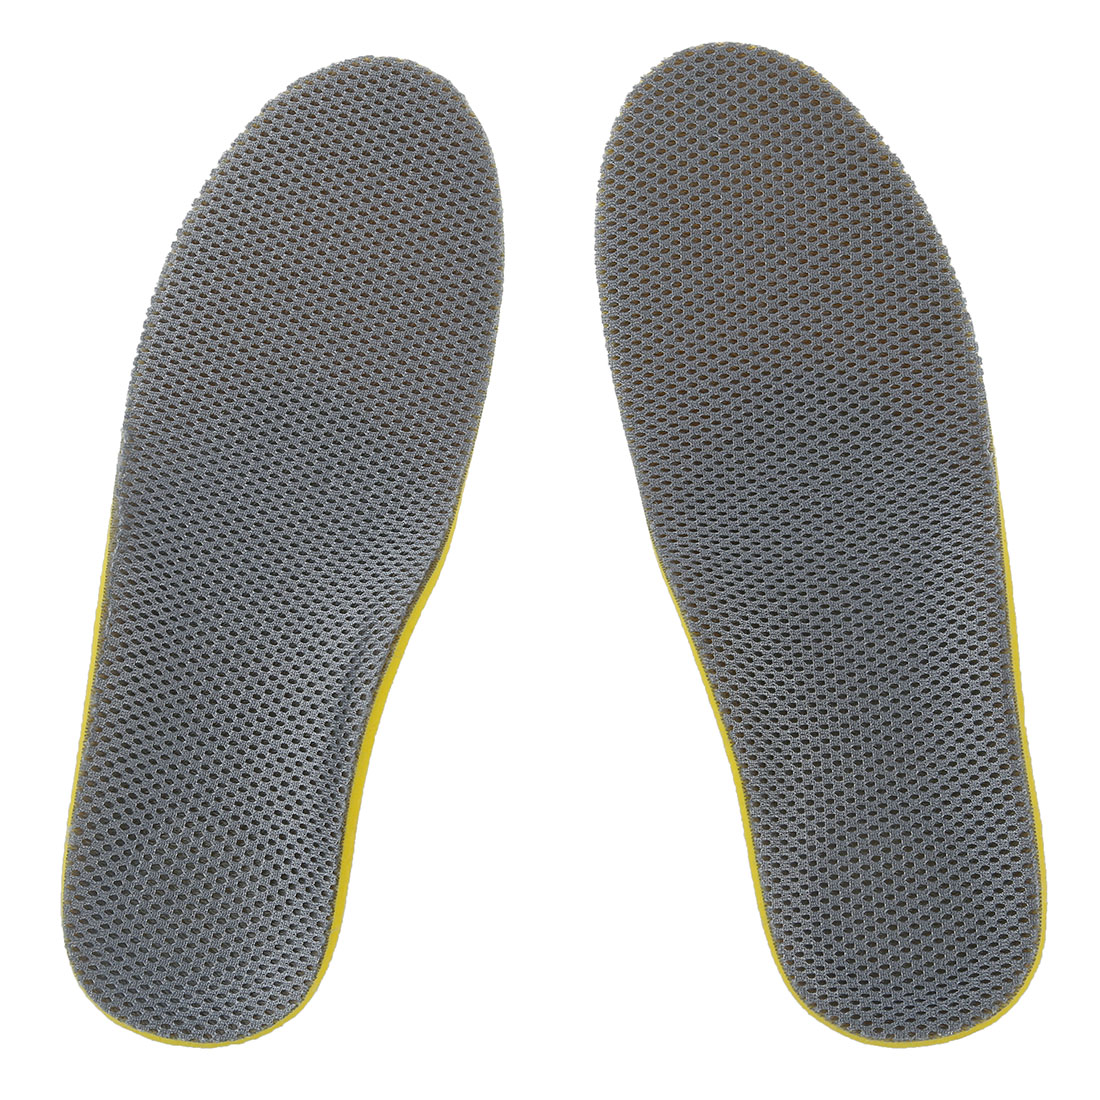 Fashion Boutique Comfortable Orthotic Shoes Insoles Inserts High Arch Support Pad fashion boutique silicone gel insoles